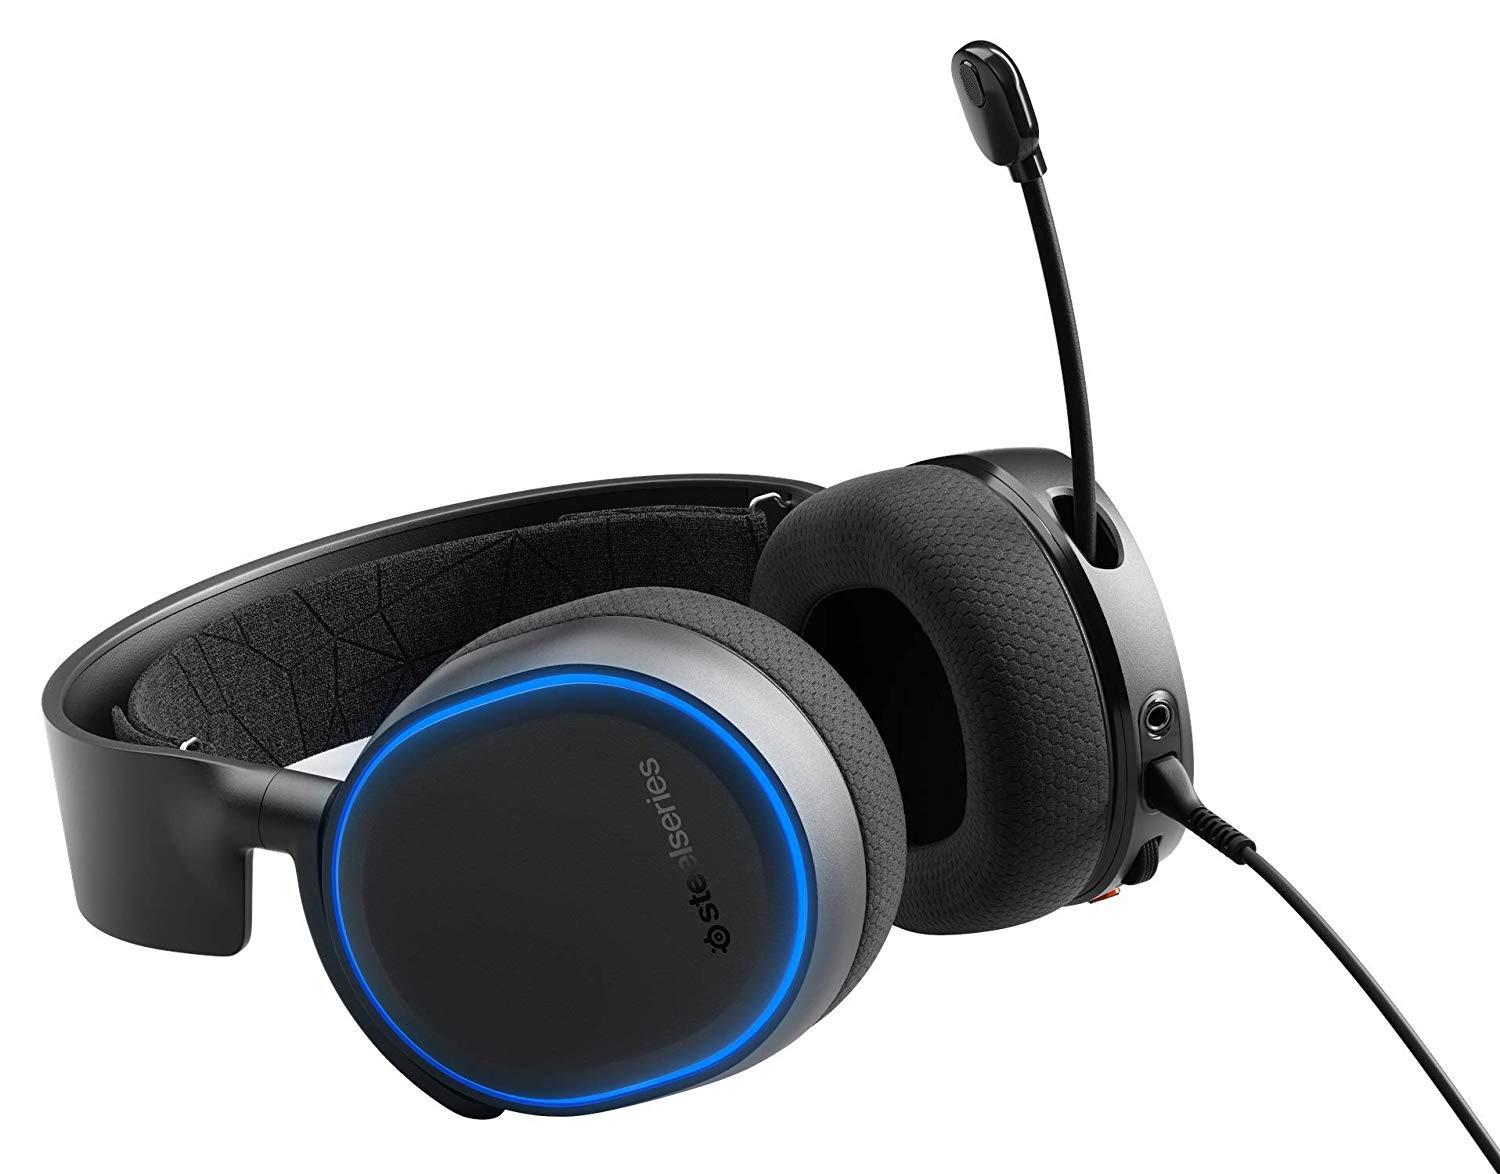 Steelseries Arctis 5 Black (2019 Edition) gaming headset